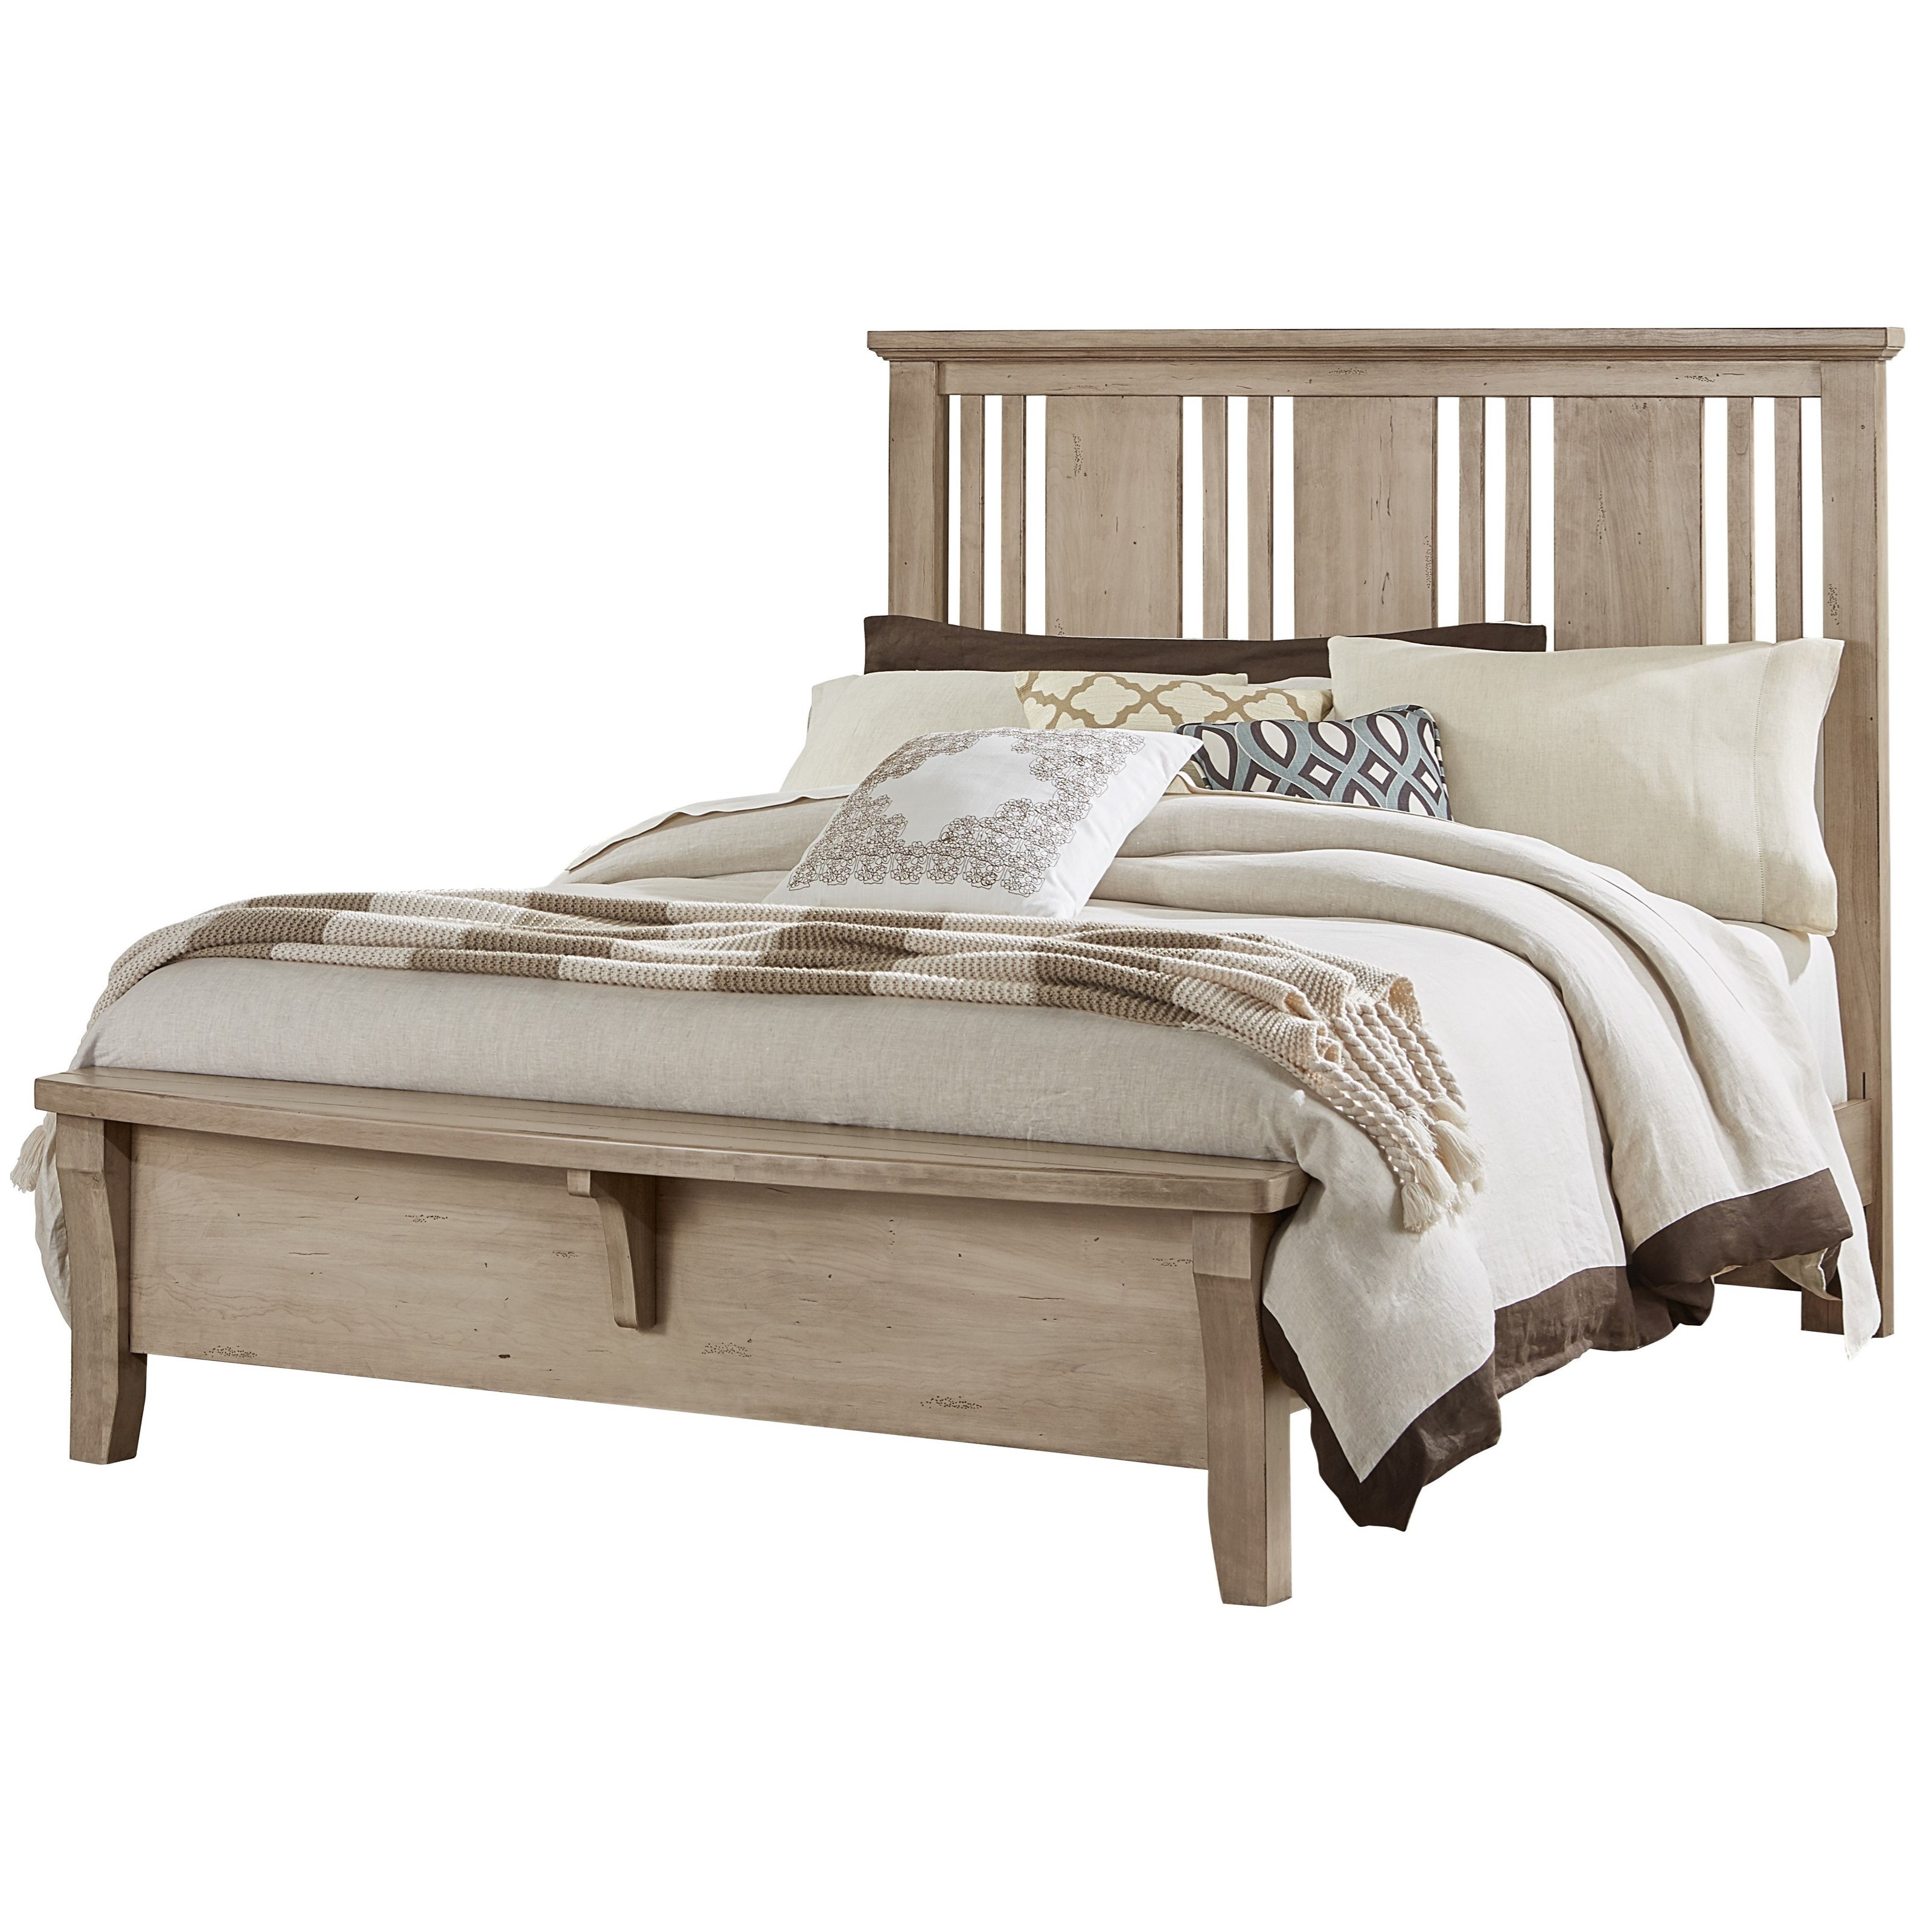 Vaughan Bassett American Cherry Queen Craftsman Bed w/ Bench Footboard - Item Number: 418-557+155+922